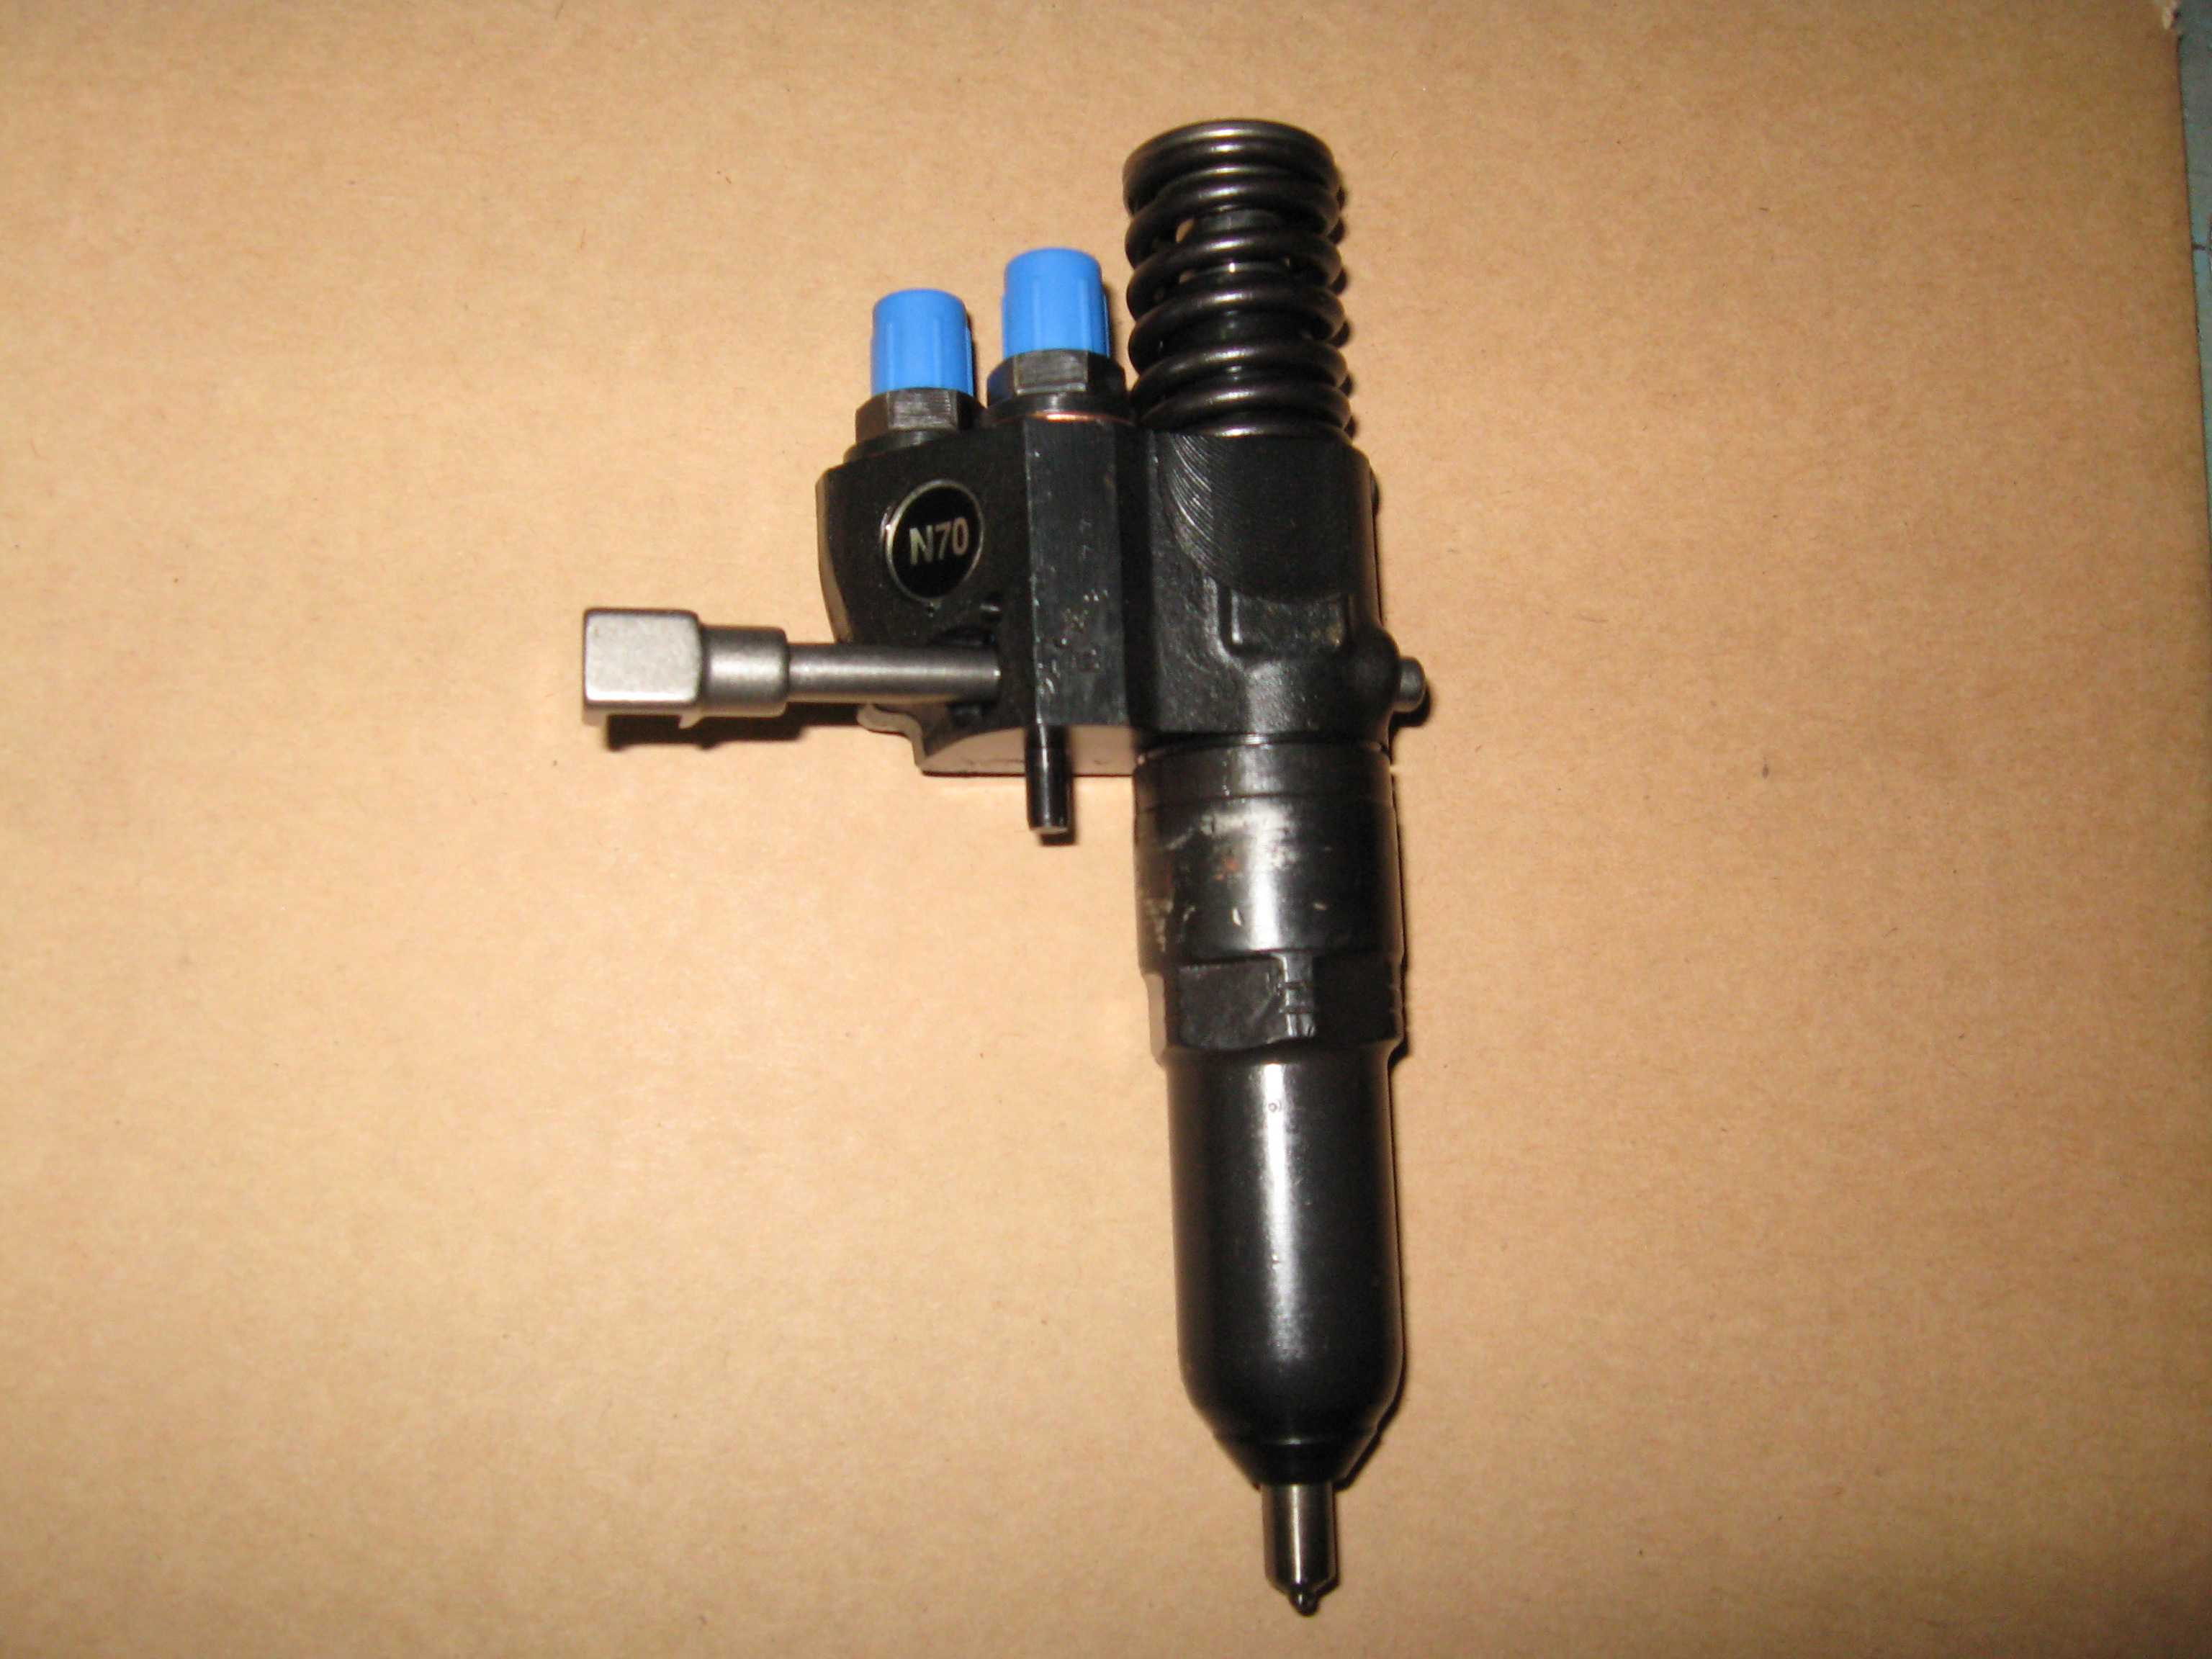 N70 Injector RX